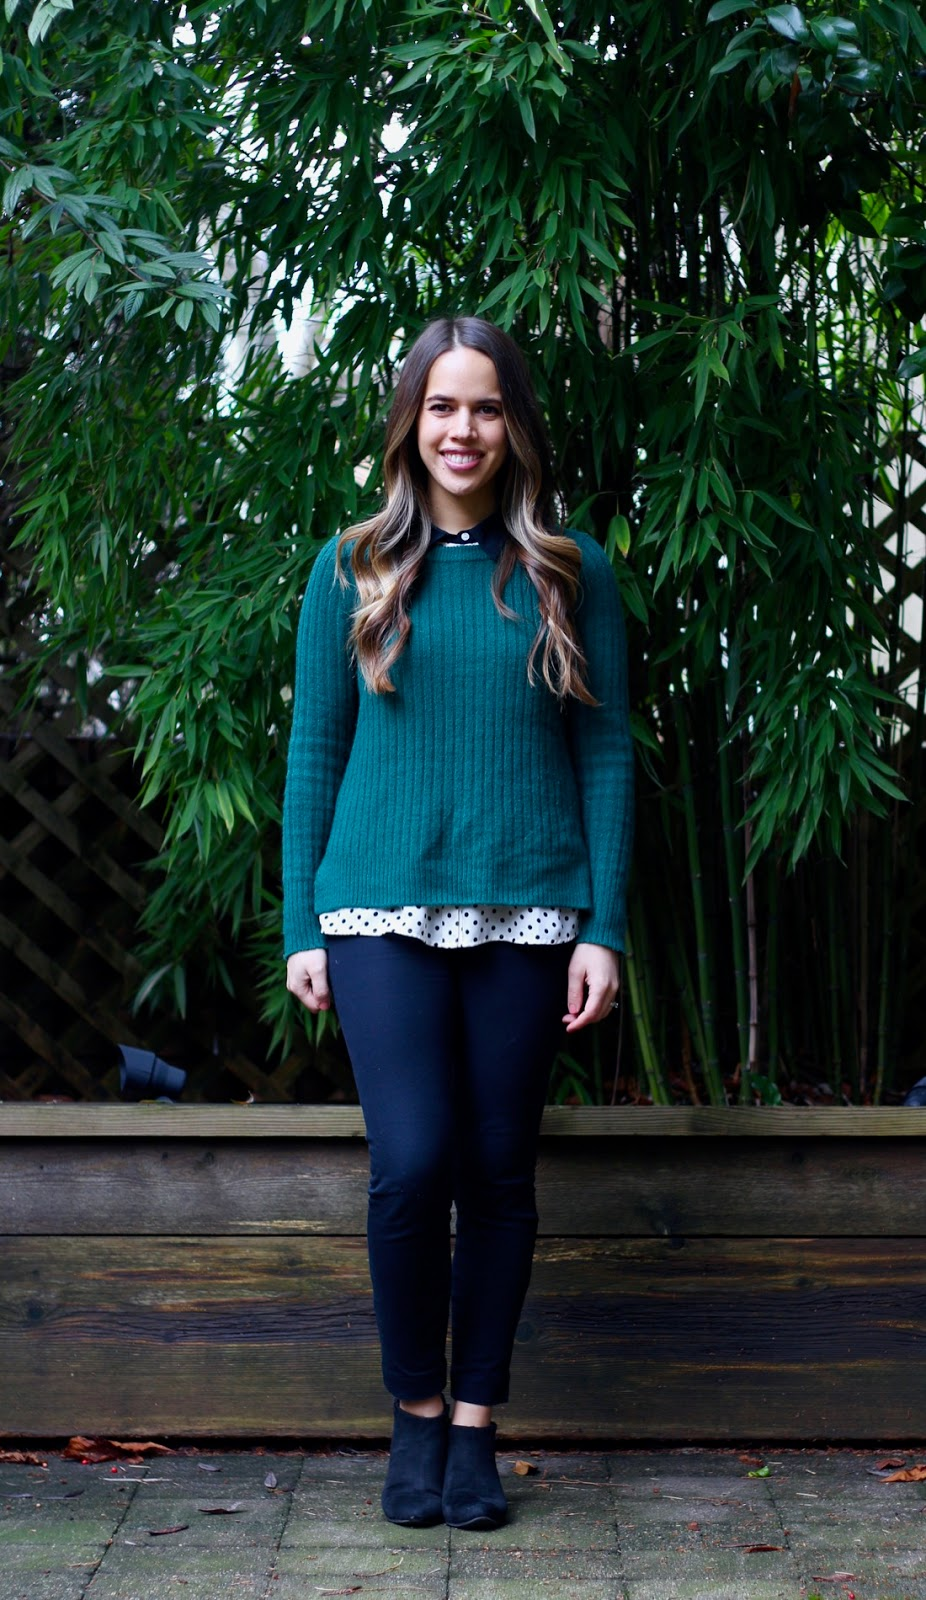 Jules in Flats - Layered Crew Neck Sweater Look (Business Casual Winter Workwear on a Budget)